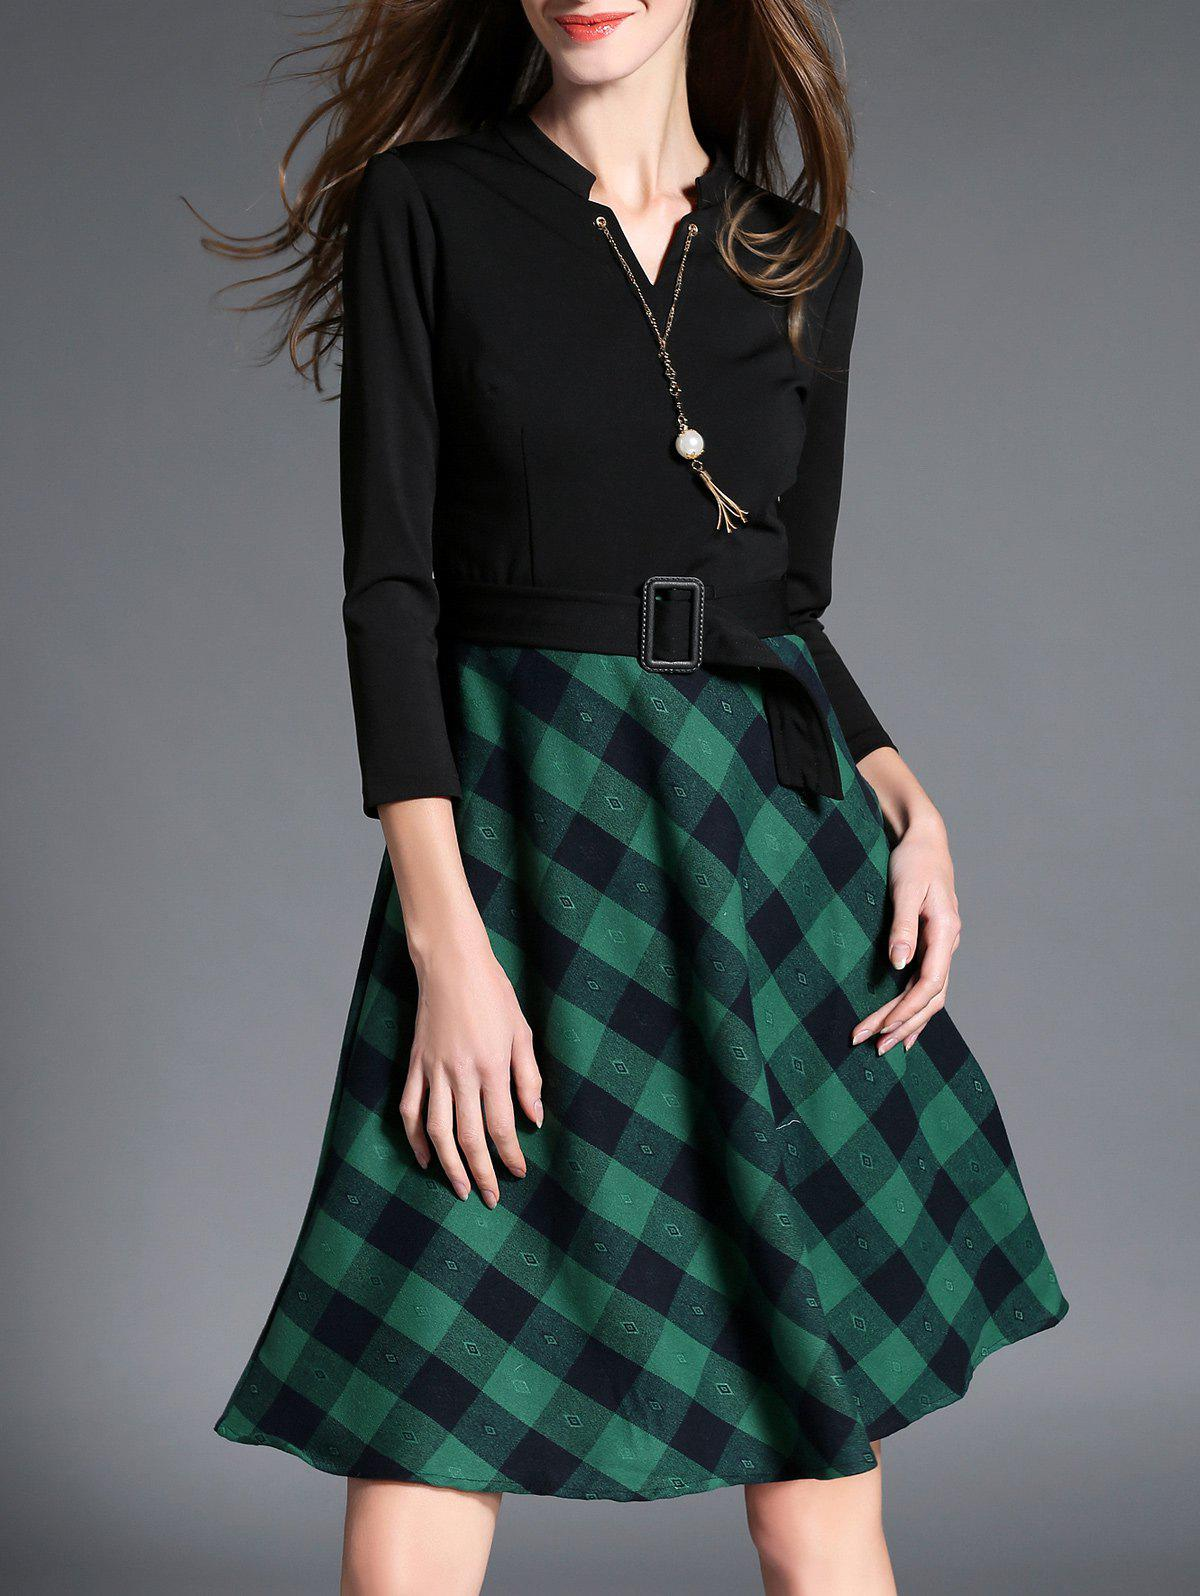 High Waist Plaid Insert Belted Dress - BLACK S